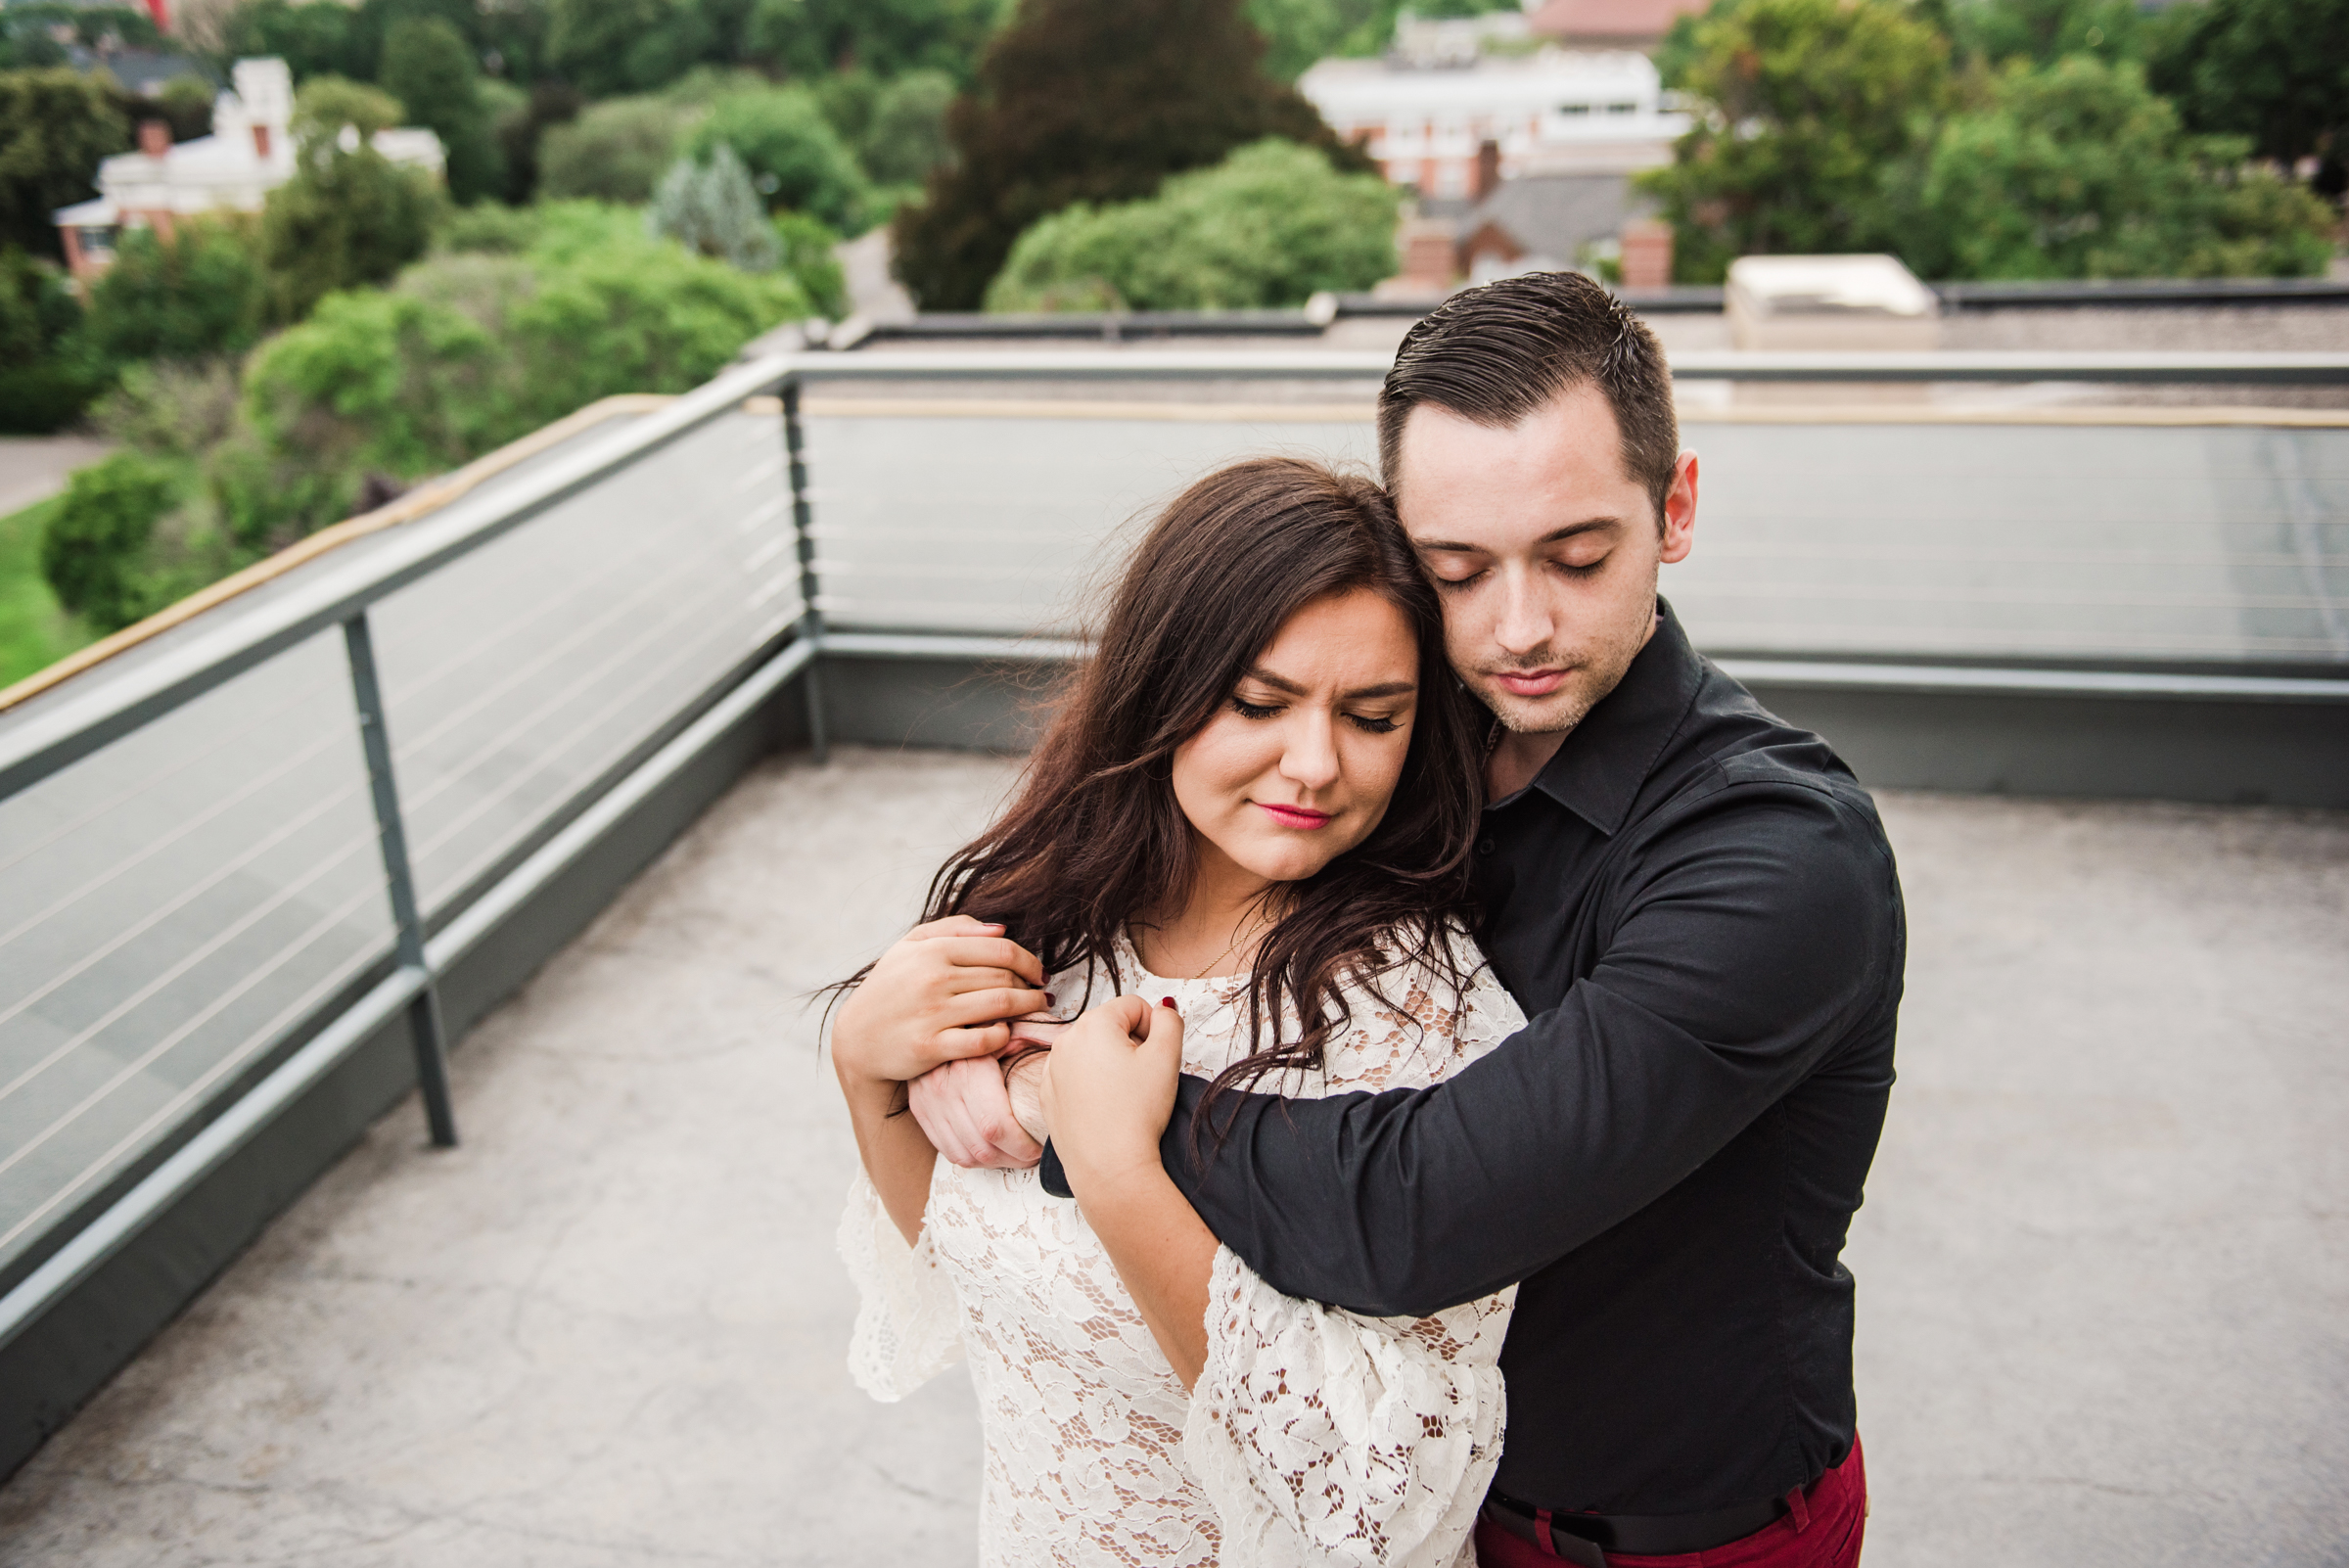 George_Eastman_House_Rochester_Engagement_Session_JILL_STUDIO_Rochester_NY_Photographer_DSC_6544.jpg